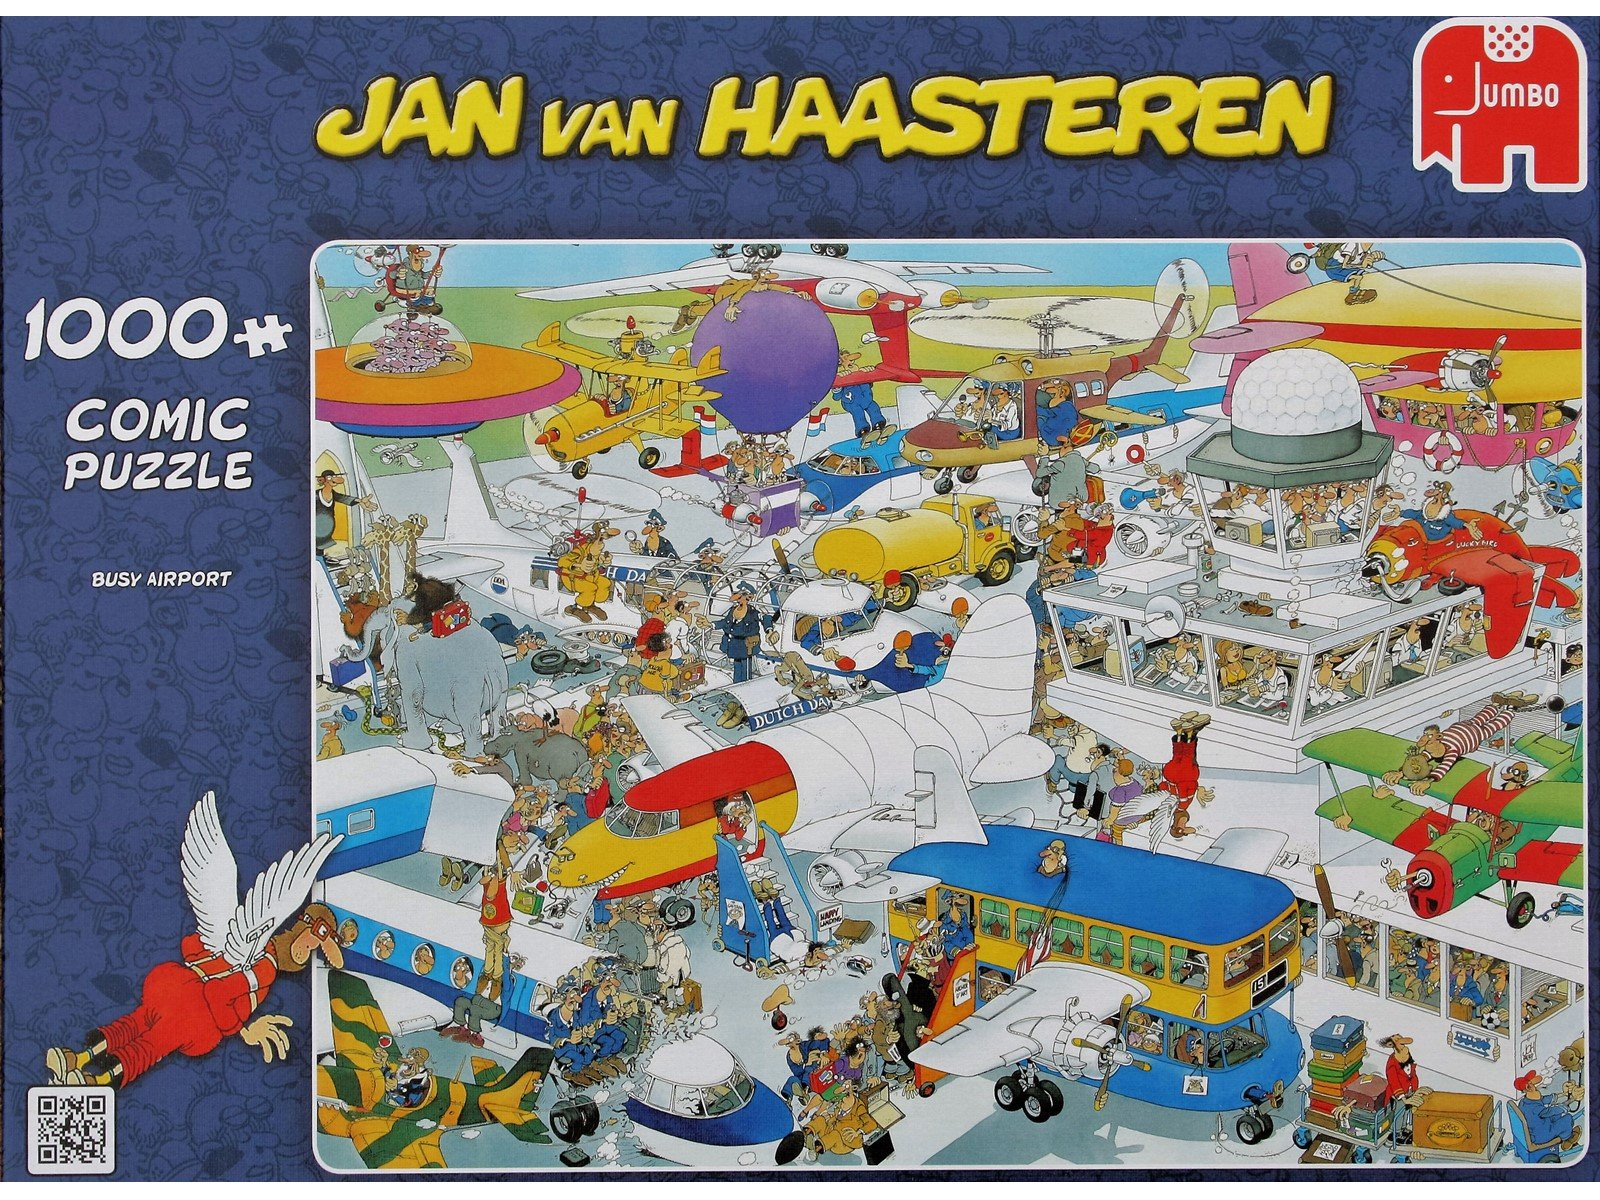 Jan Van Haasteren - Busy Airport - 1000 Piece Puzzle (81453J)